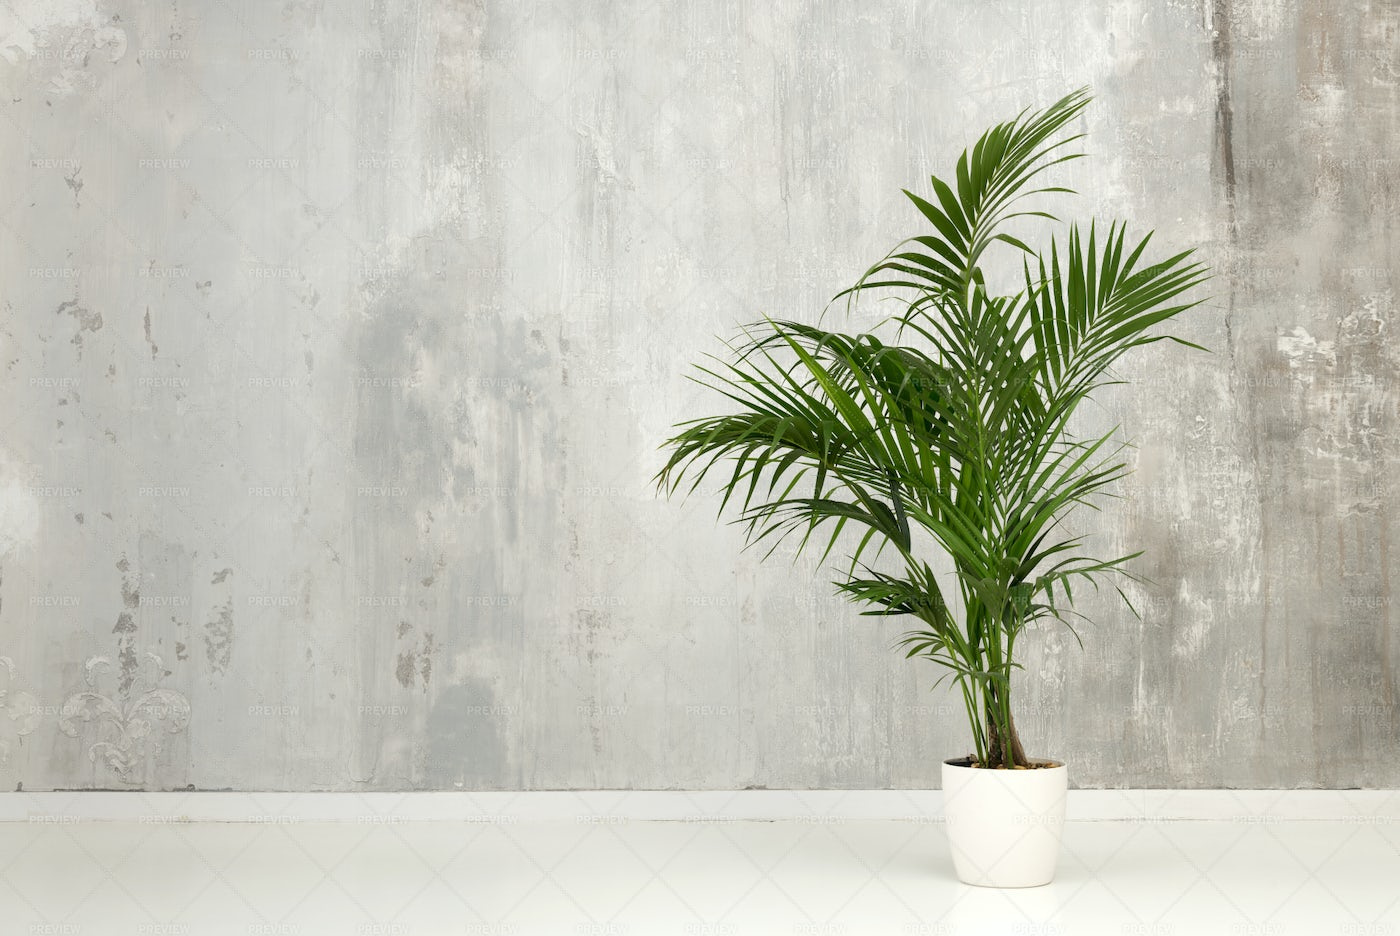 Leafy Green Potted Kentia Palm: Stock Photos